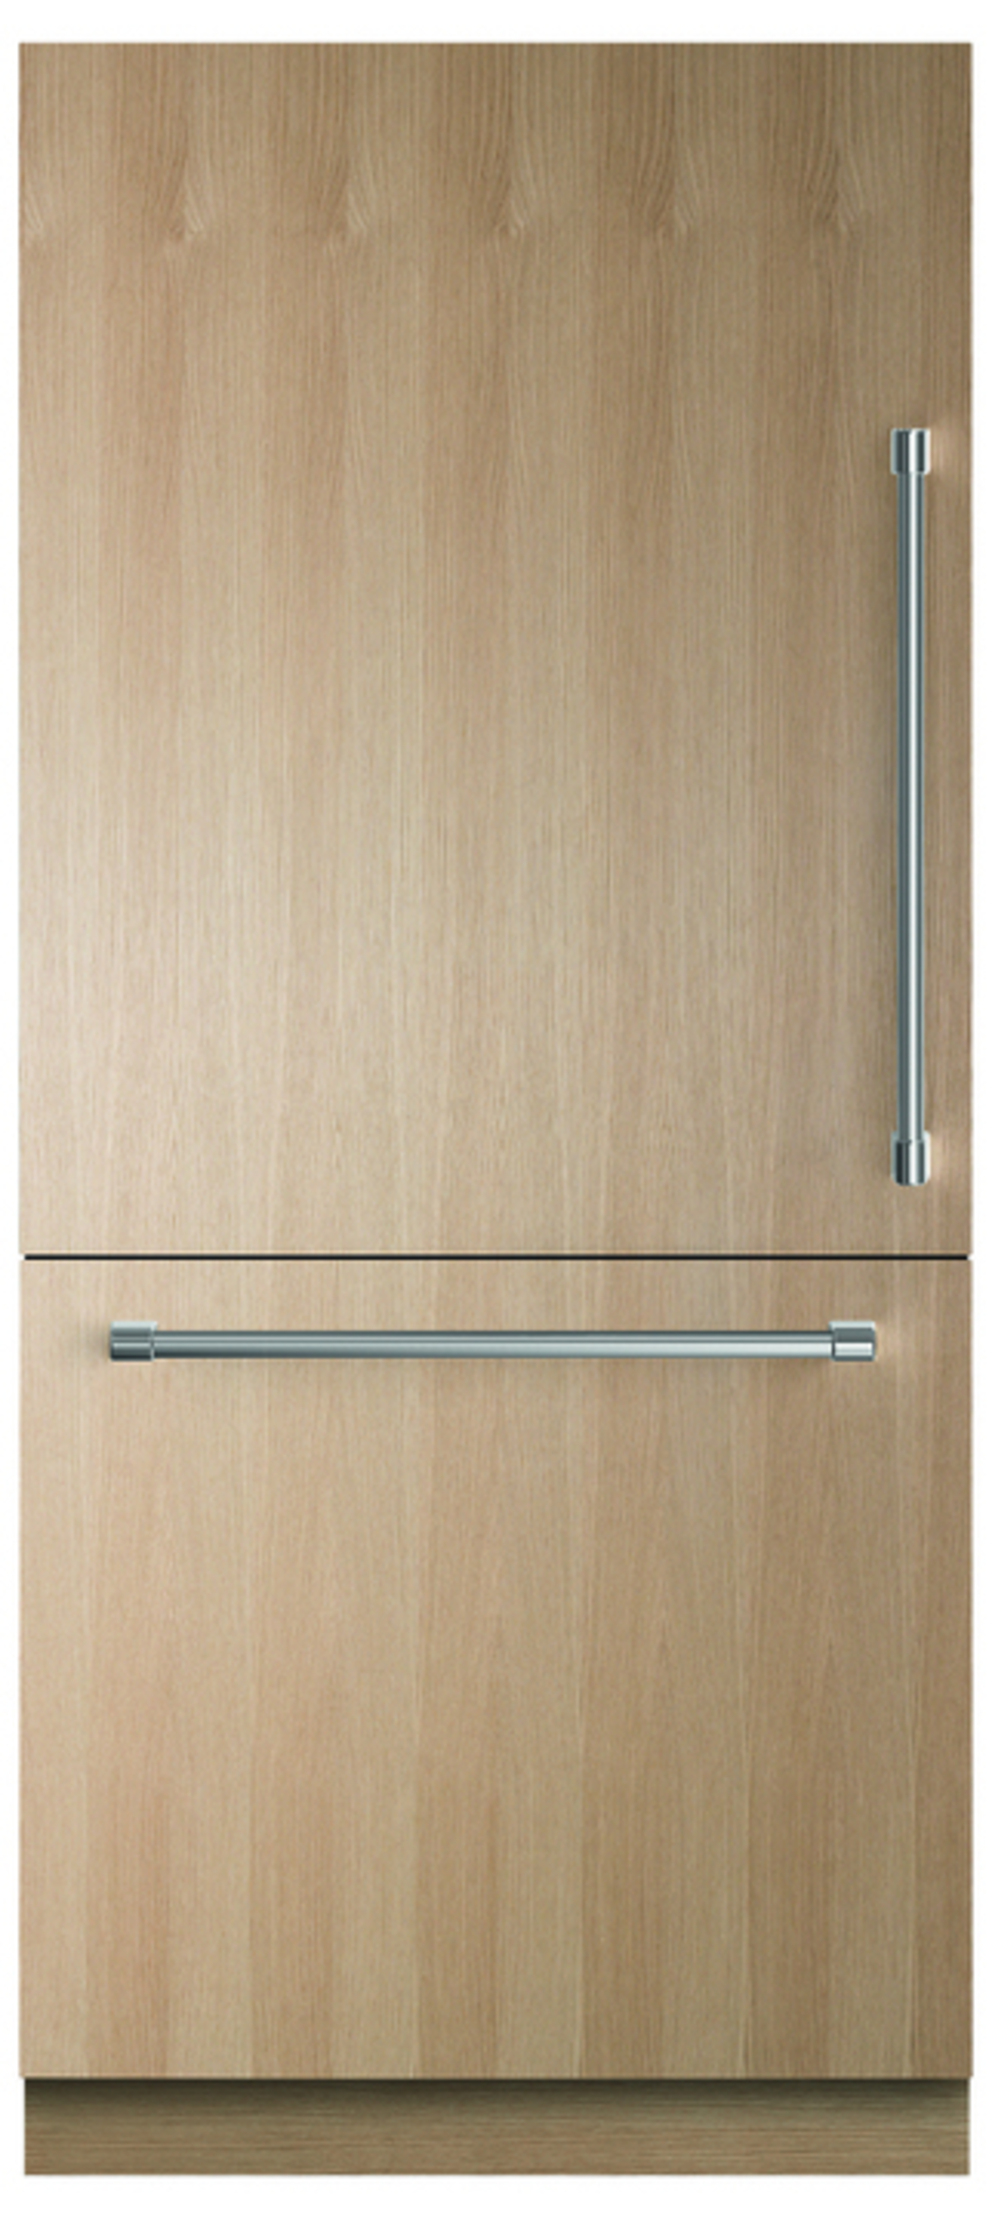 Réfrigérateurs Fisher&Paykel RS36W80LJ